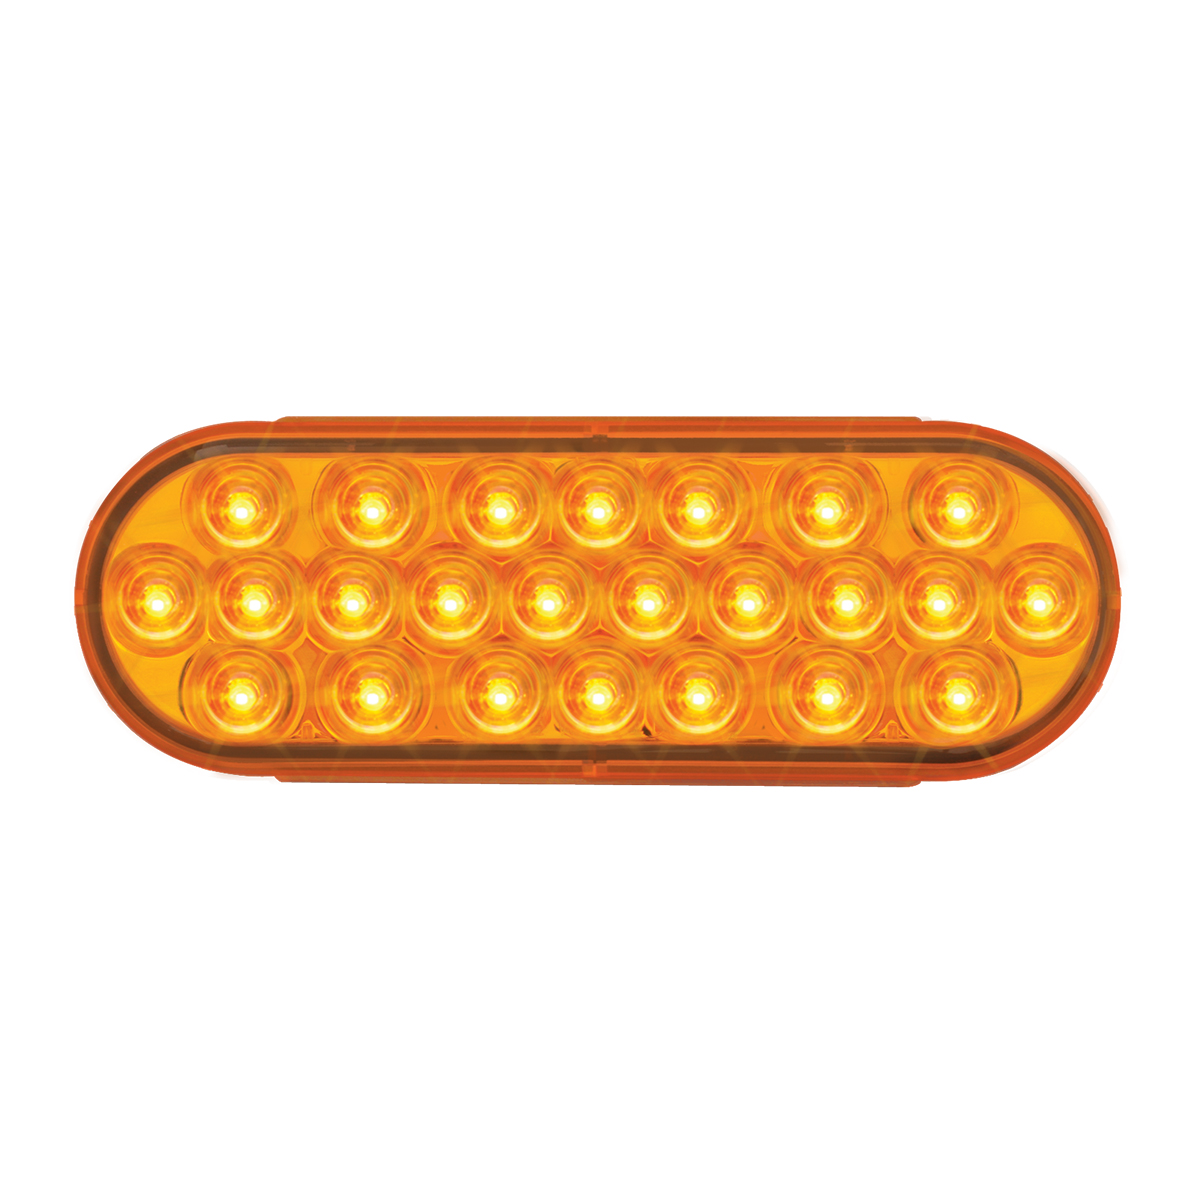 76525 Oval Pearl LED Strobe Light in Amber/Amber